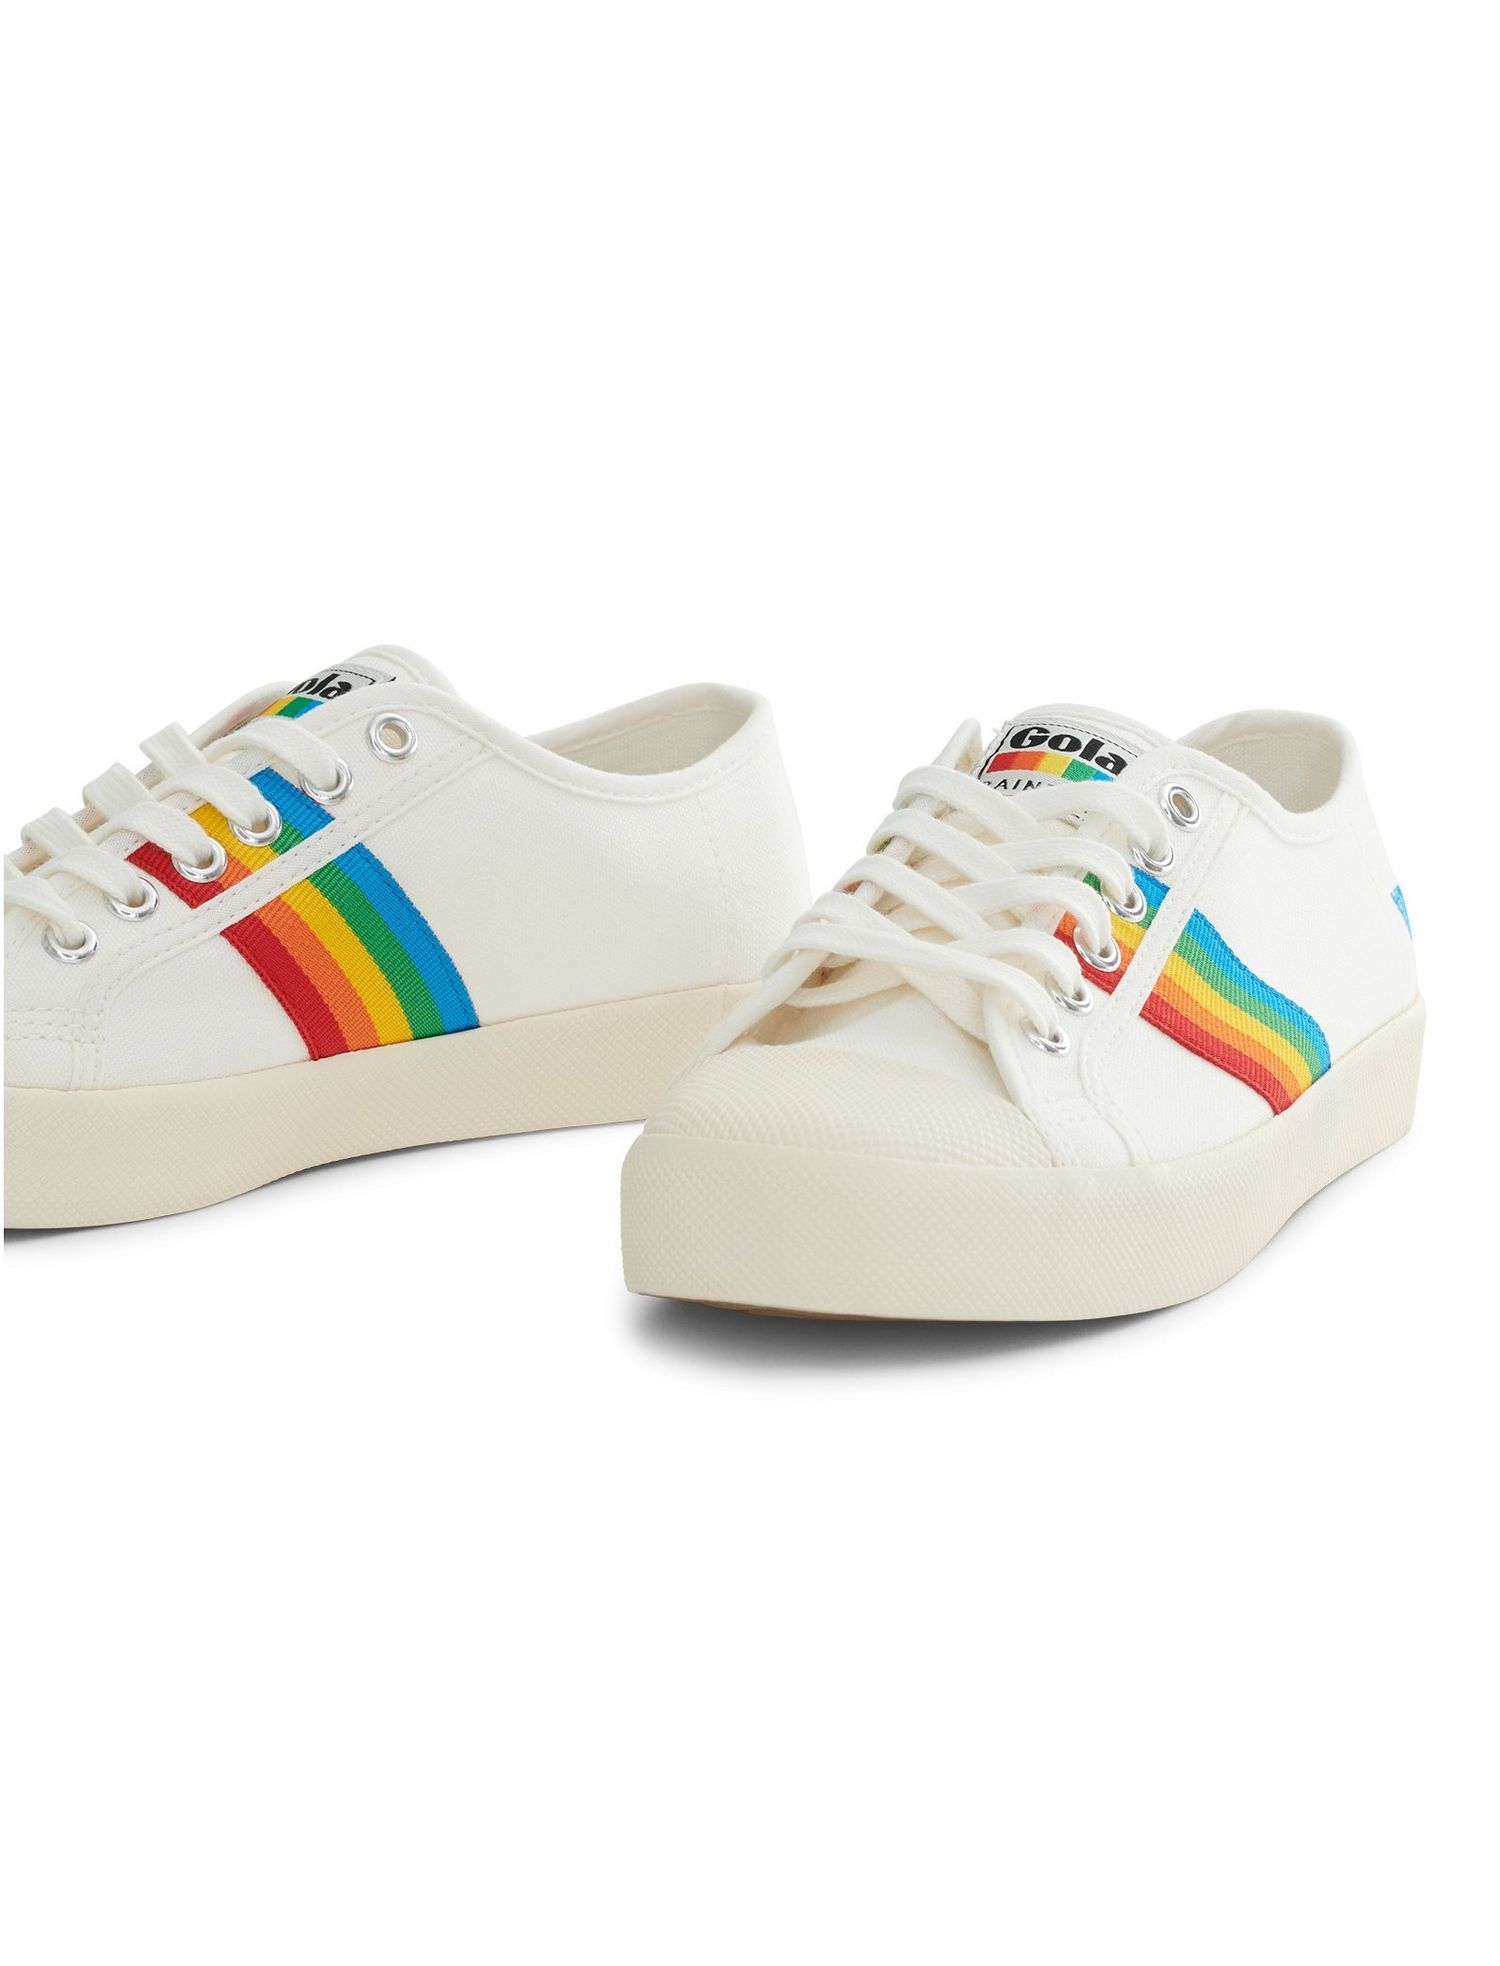 Retro Sneakers, Vintage Tennis Shoes Lucky Brand Gola Coaster Rainbow Canvas Sneaker In Off White Size 6 $65.00 AT vintagedancer.com